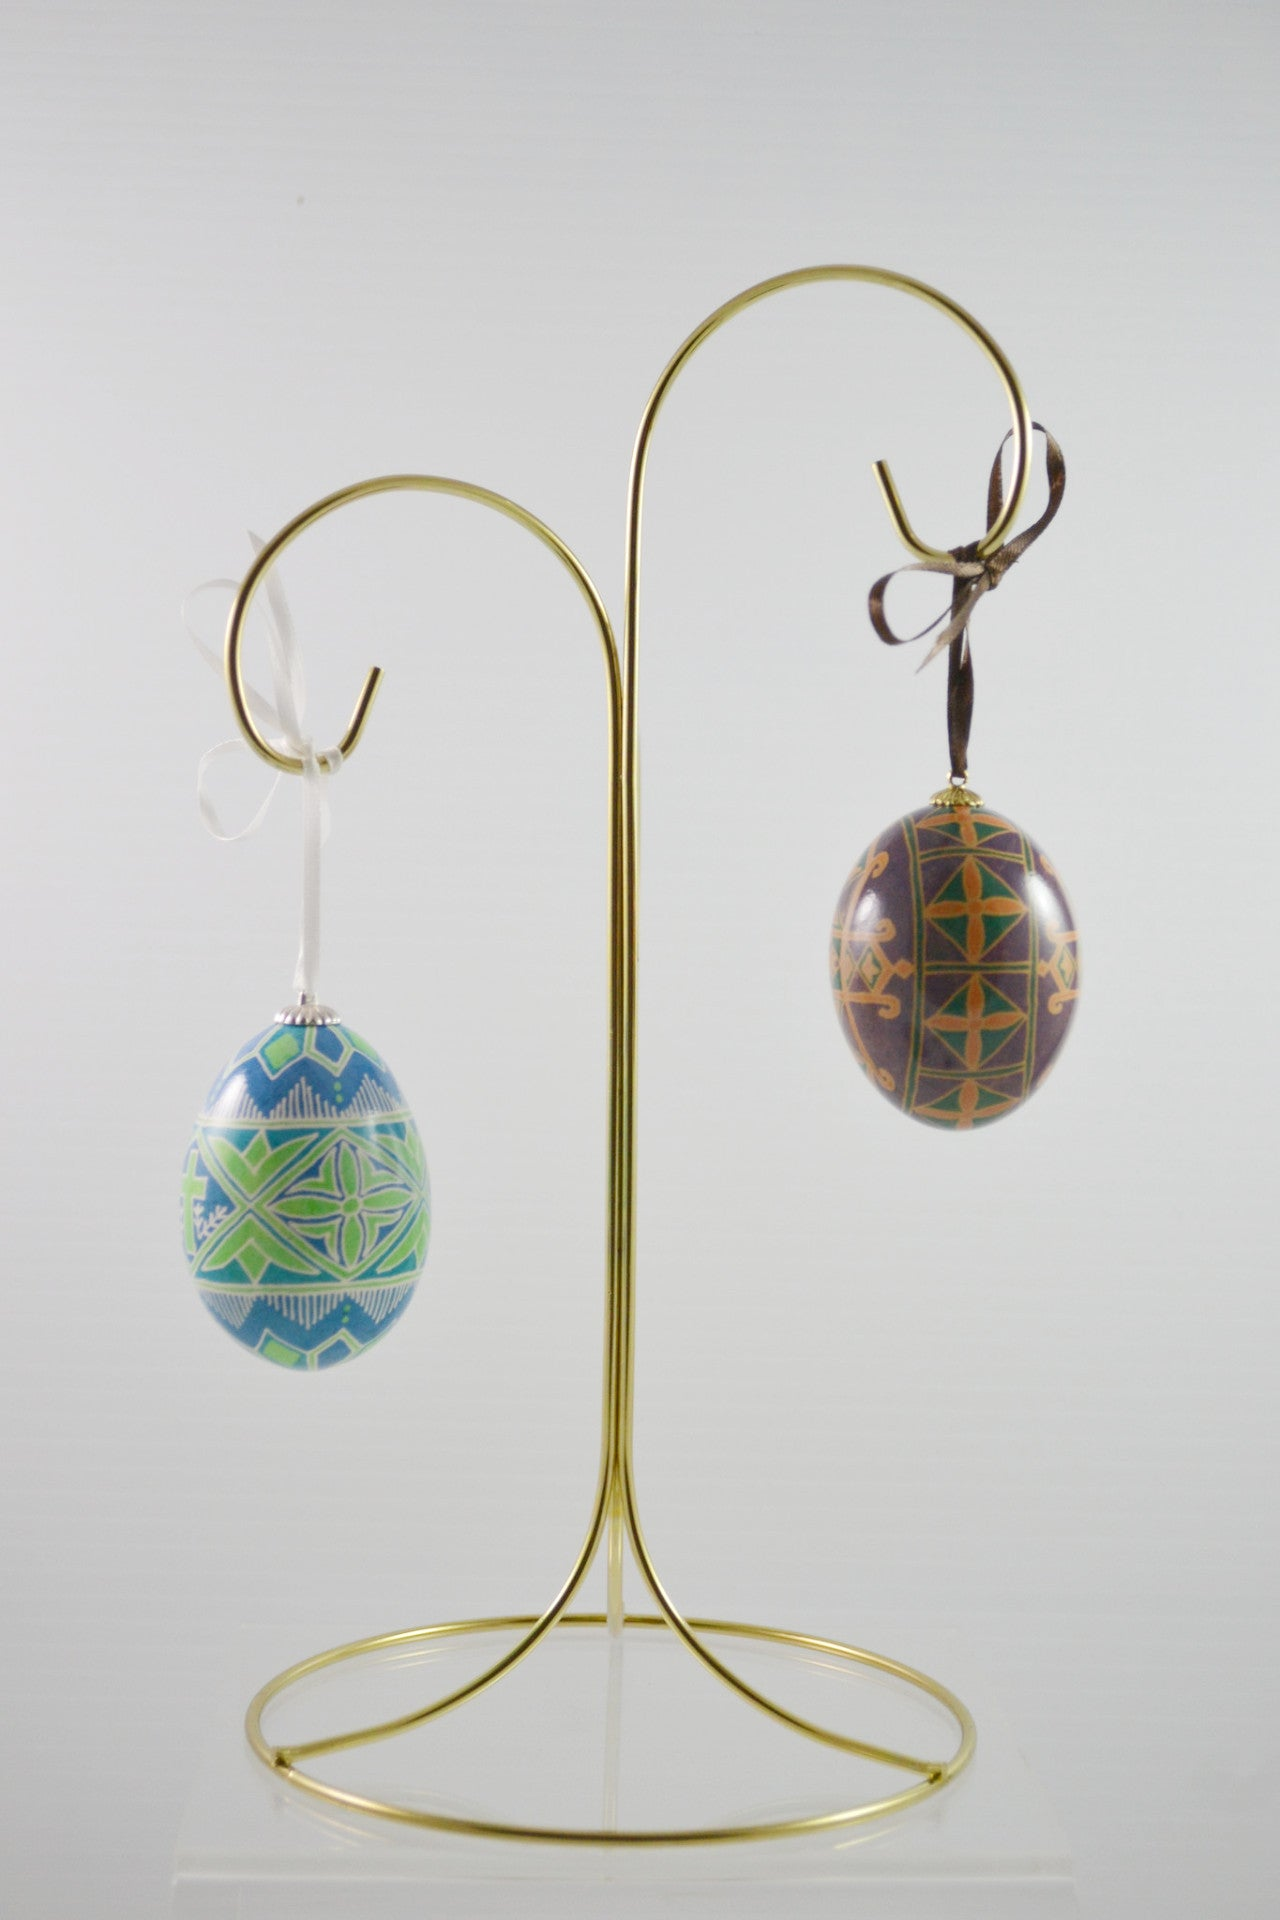 Pysanky Egg Ornaments Stands by DeeDeeLanham